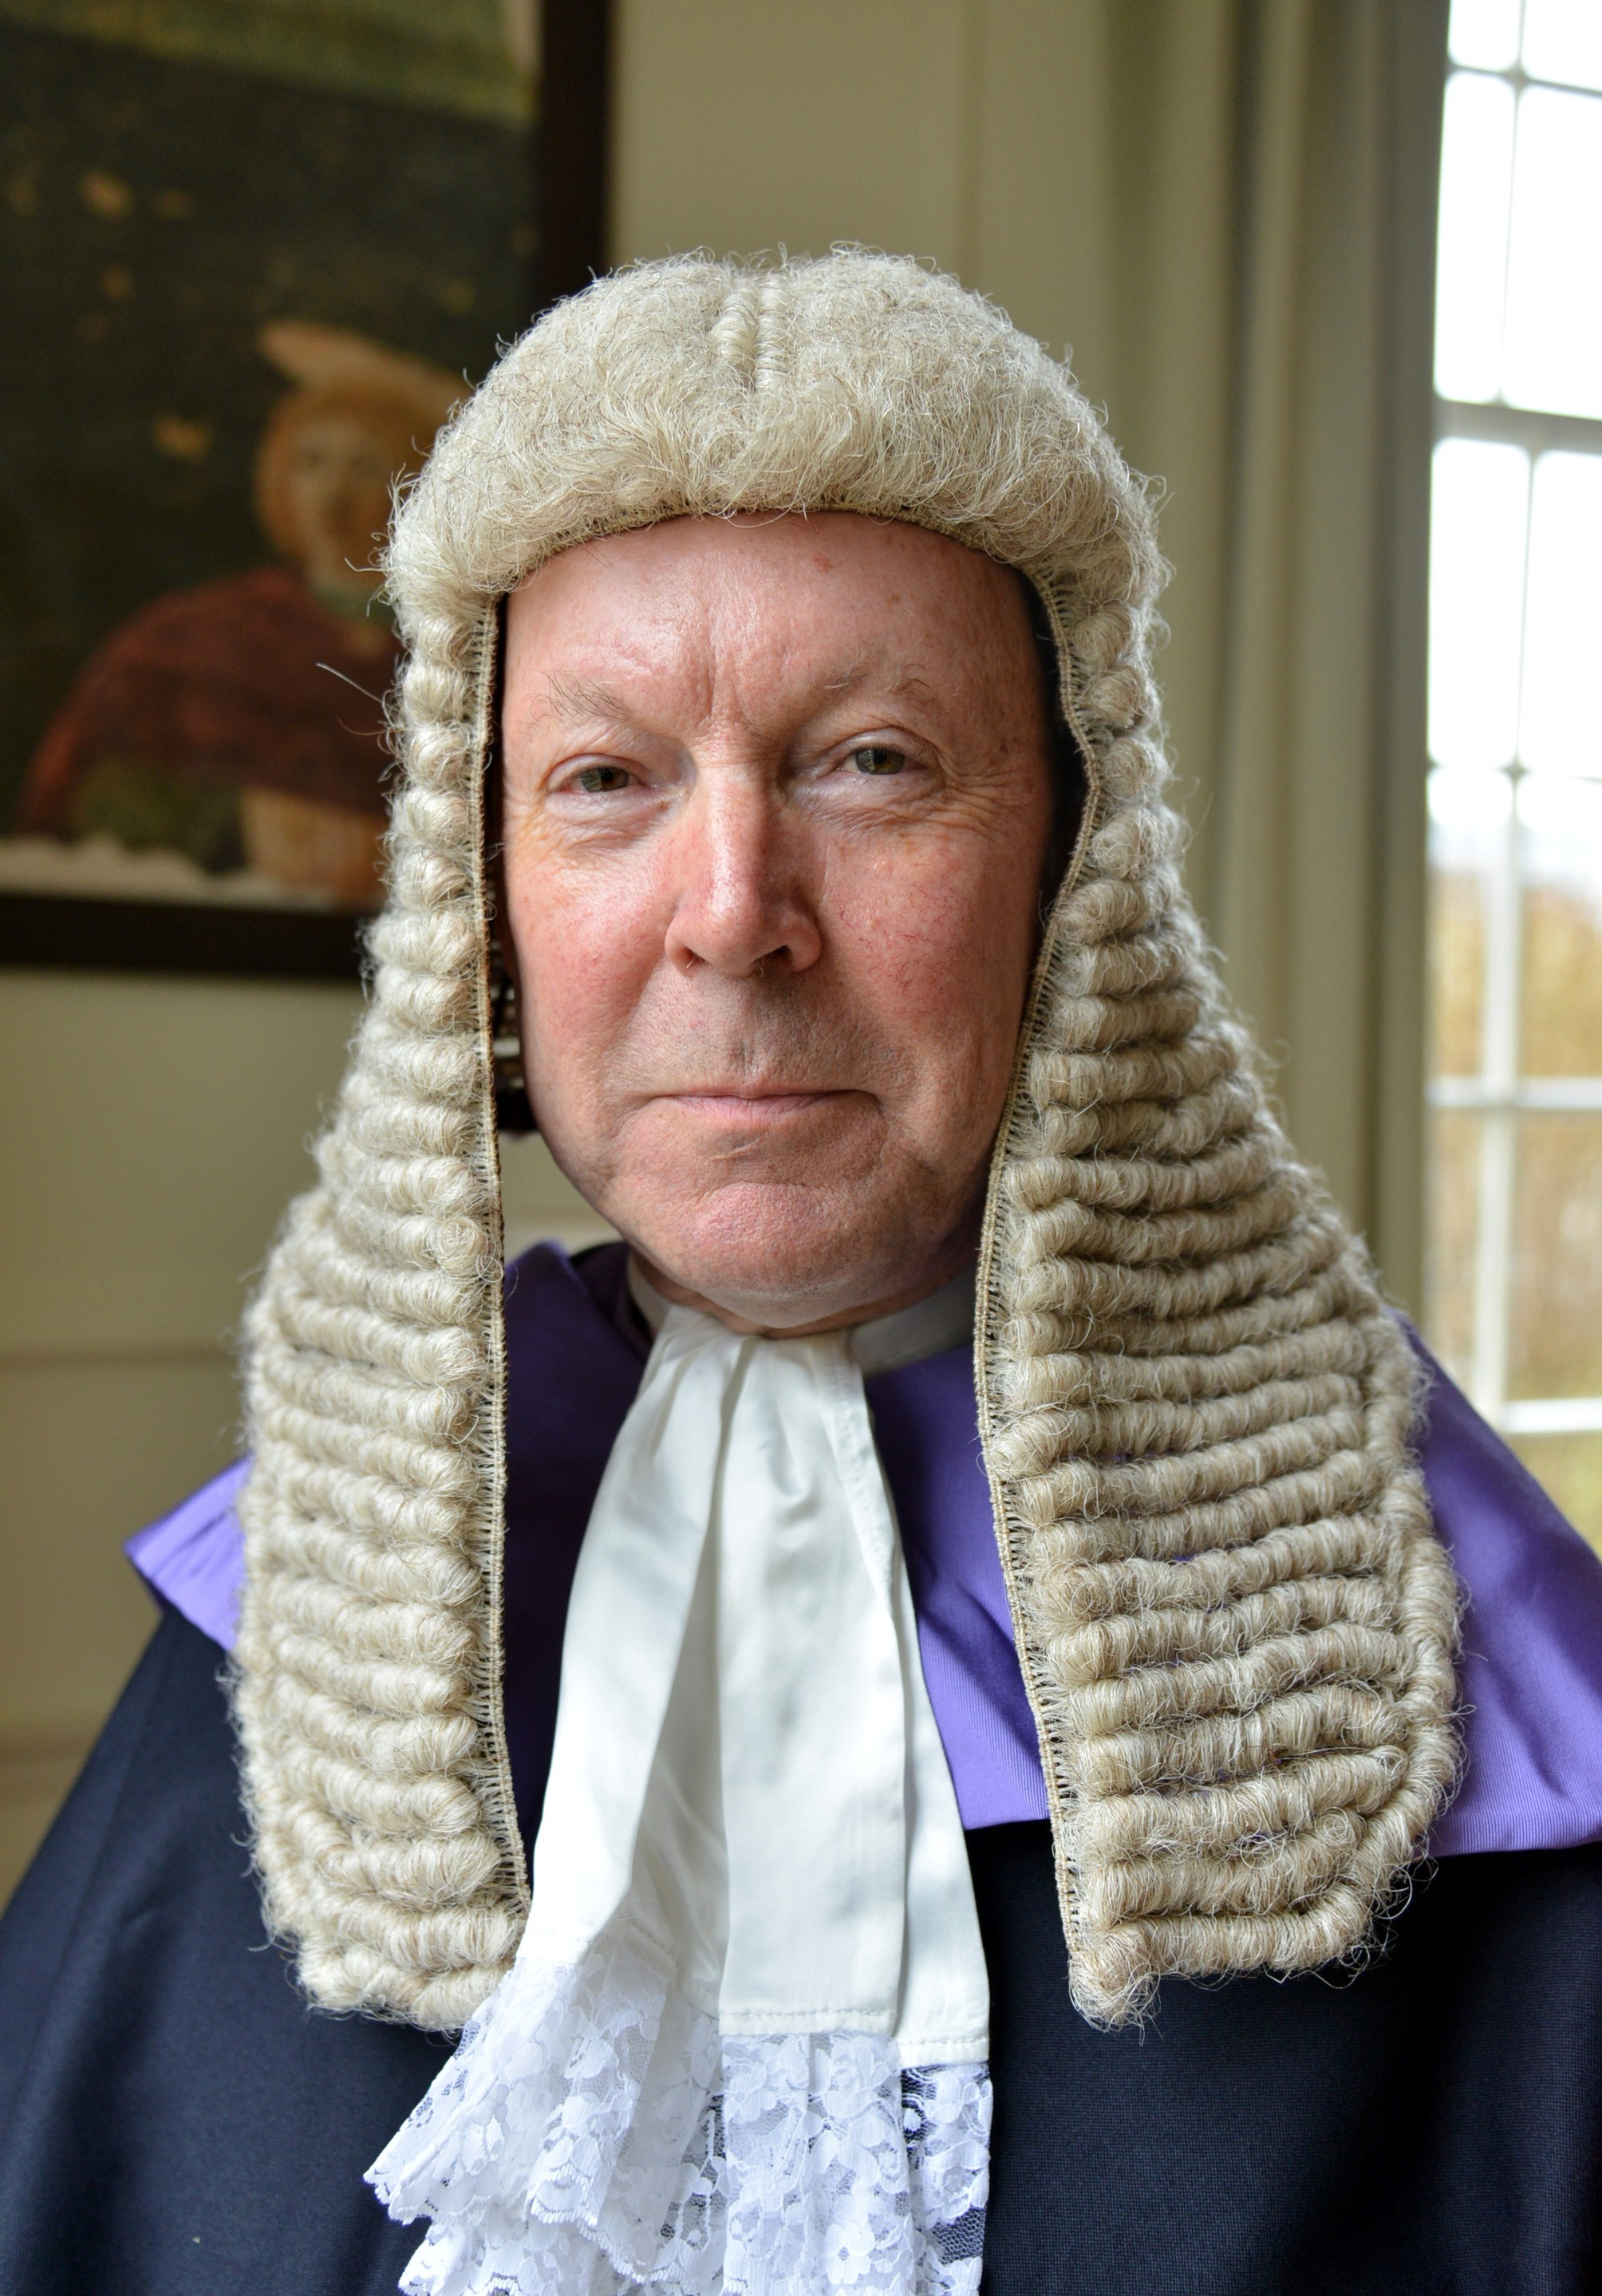 Ahmed was jailed for ten months by the Recorder of Bradford, Judge Jonathan Durham Hall QC